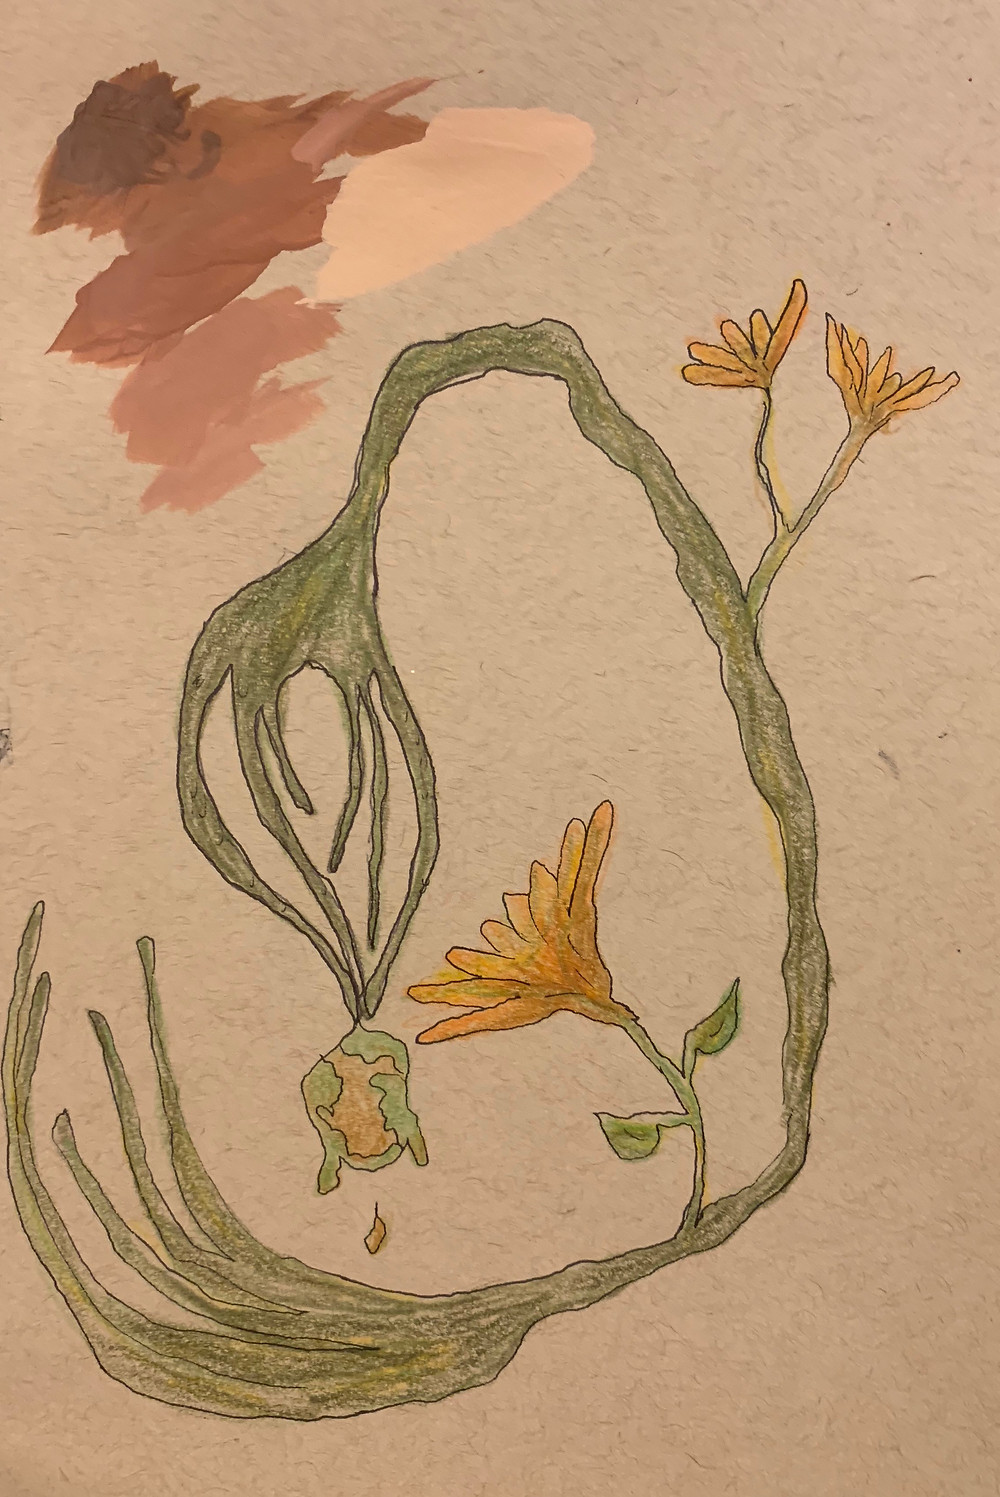 The form now has rounded fingers, growing flowers and is catching the Earth as it's falling apart.